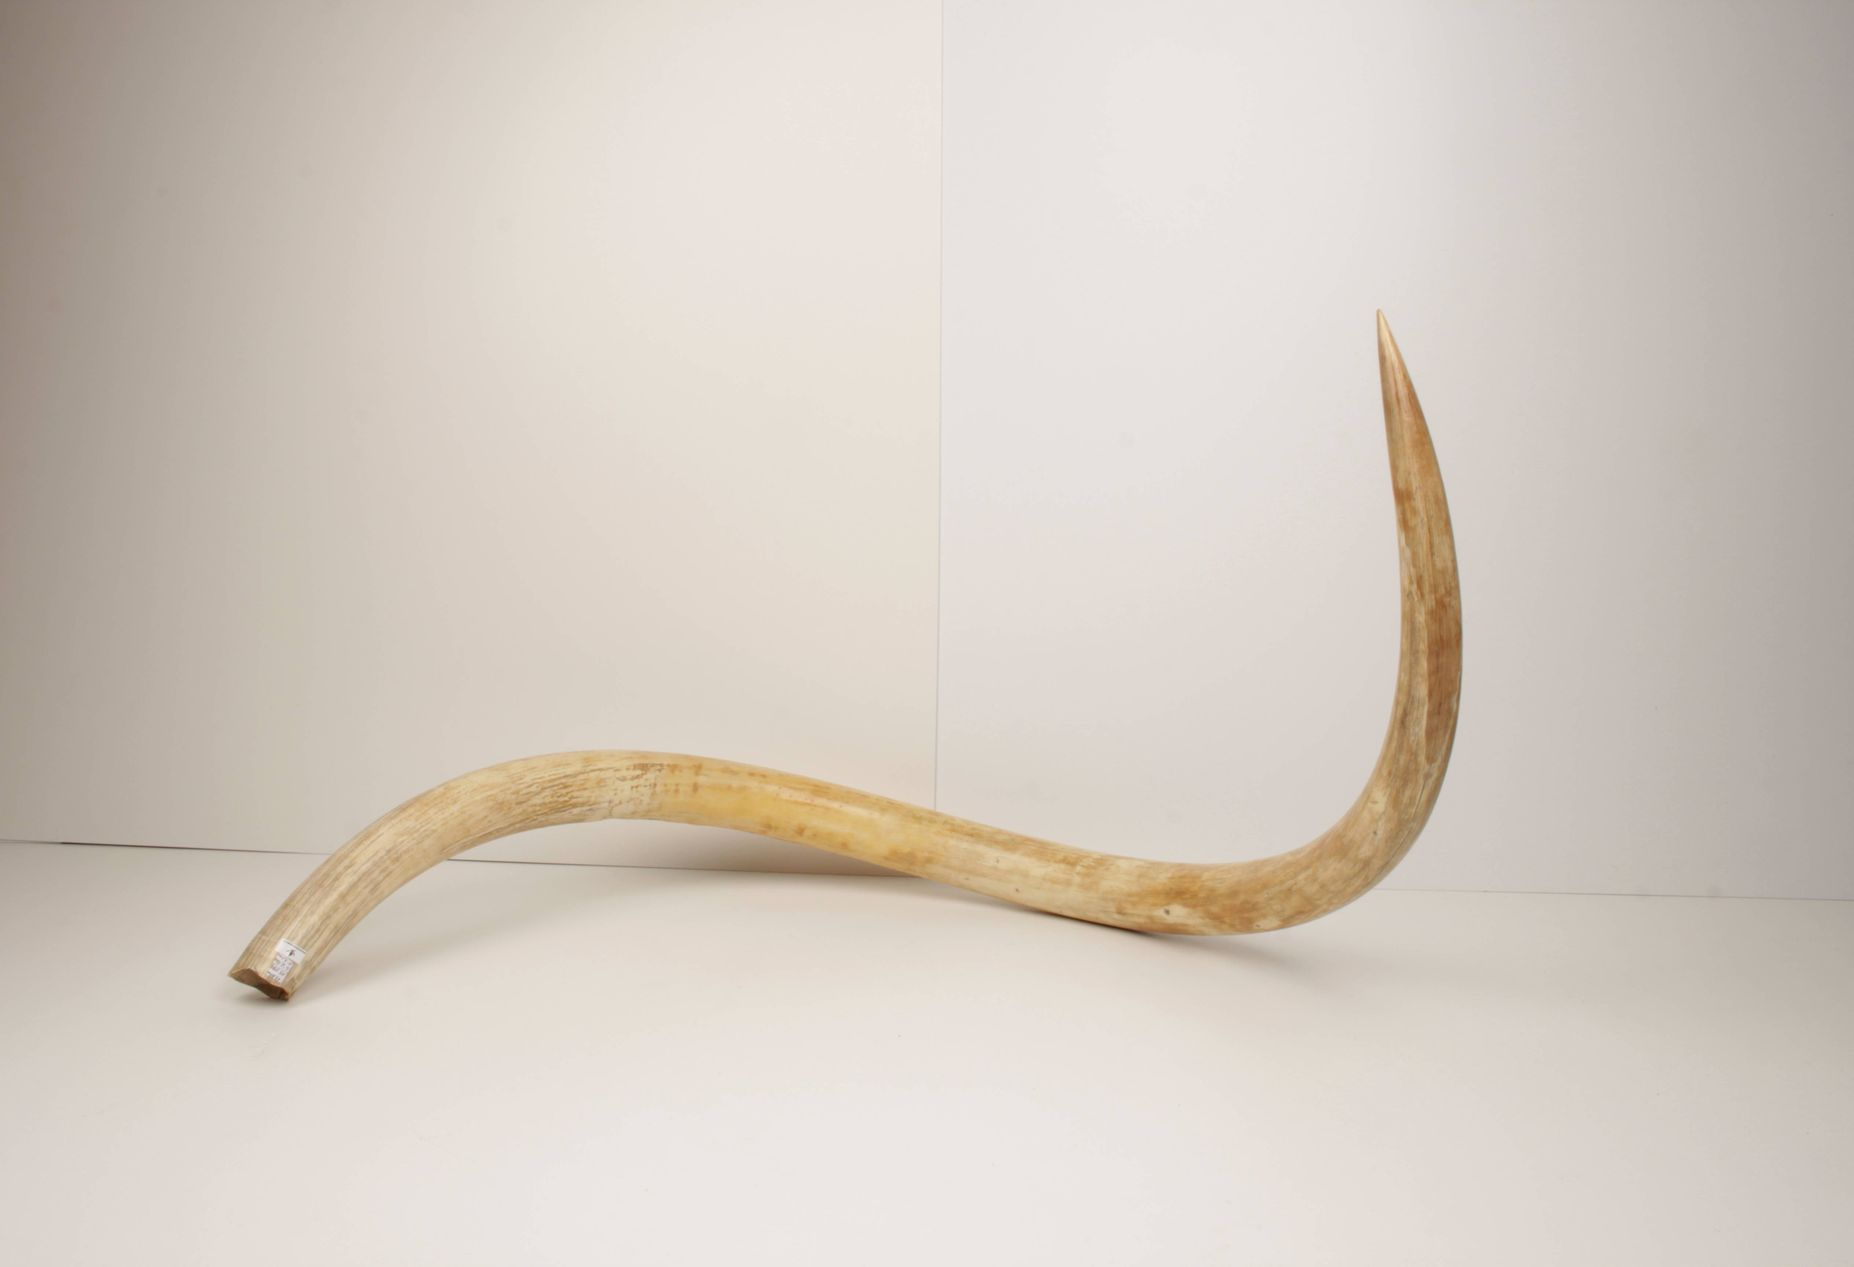 Natural woolly mammoth tusk